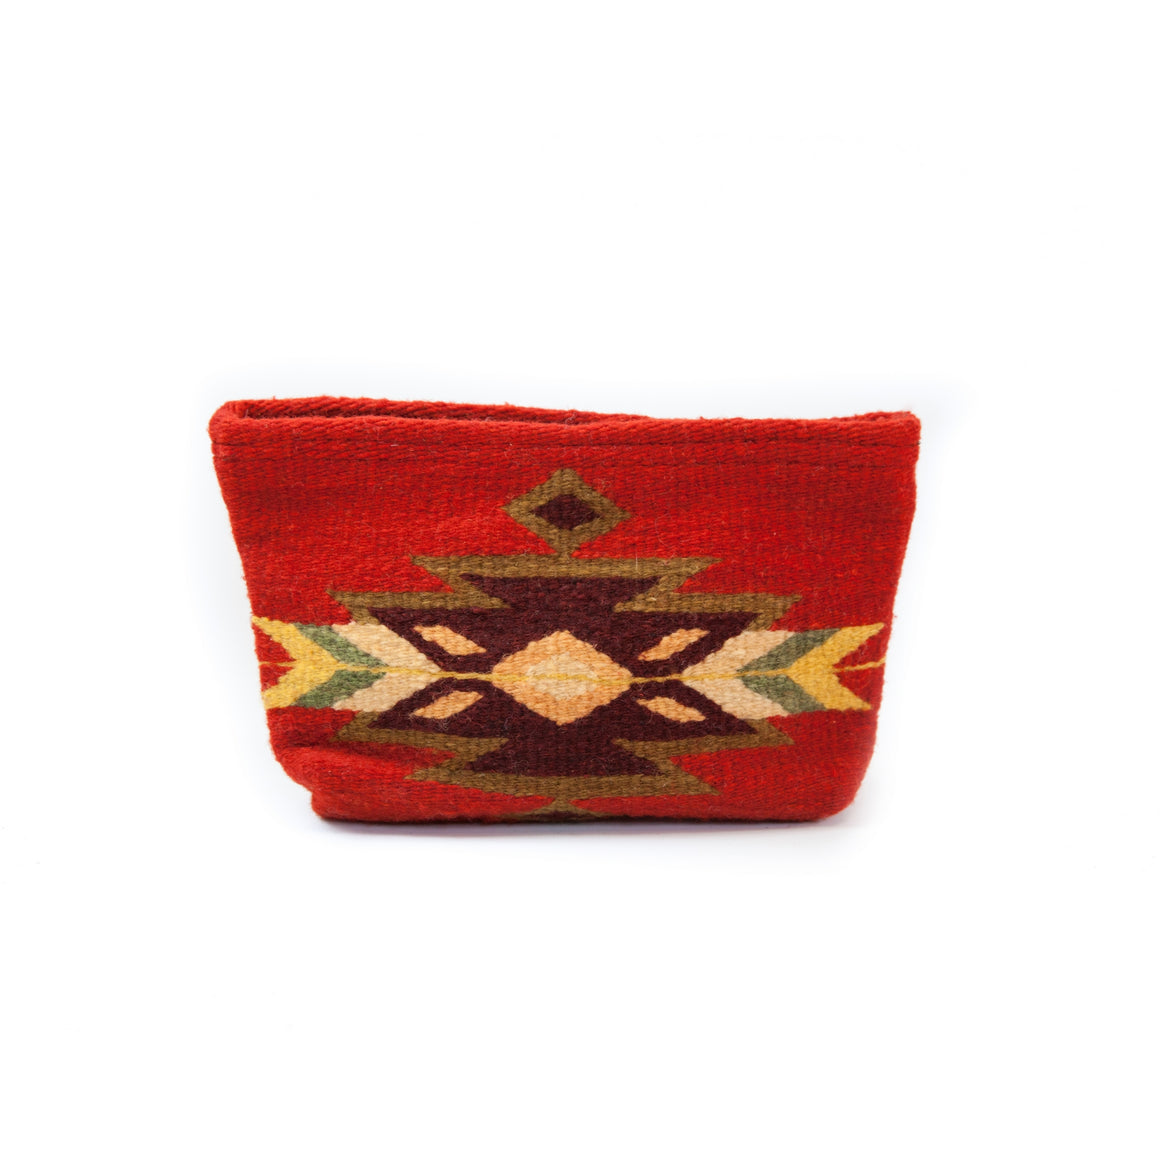 Blood Moon Wool Clutch